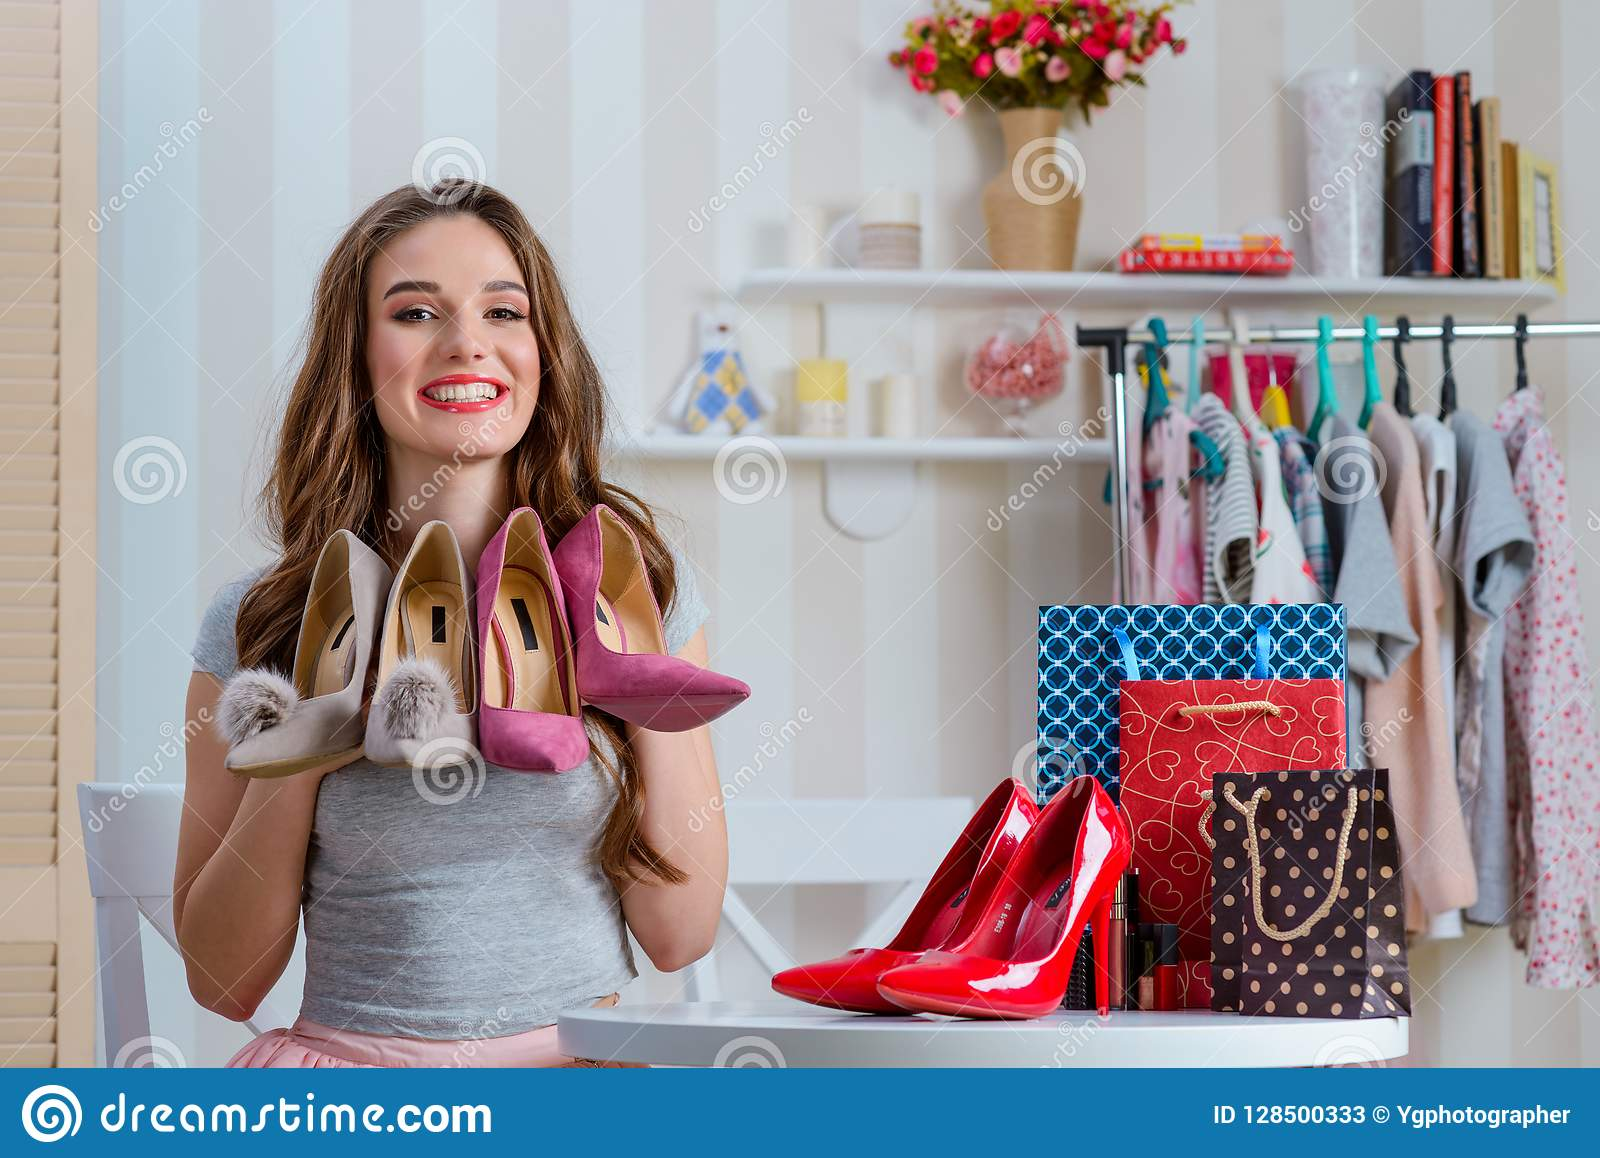 Beauty blogger holding pump shoes